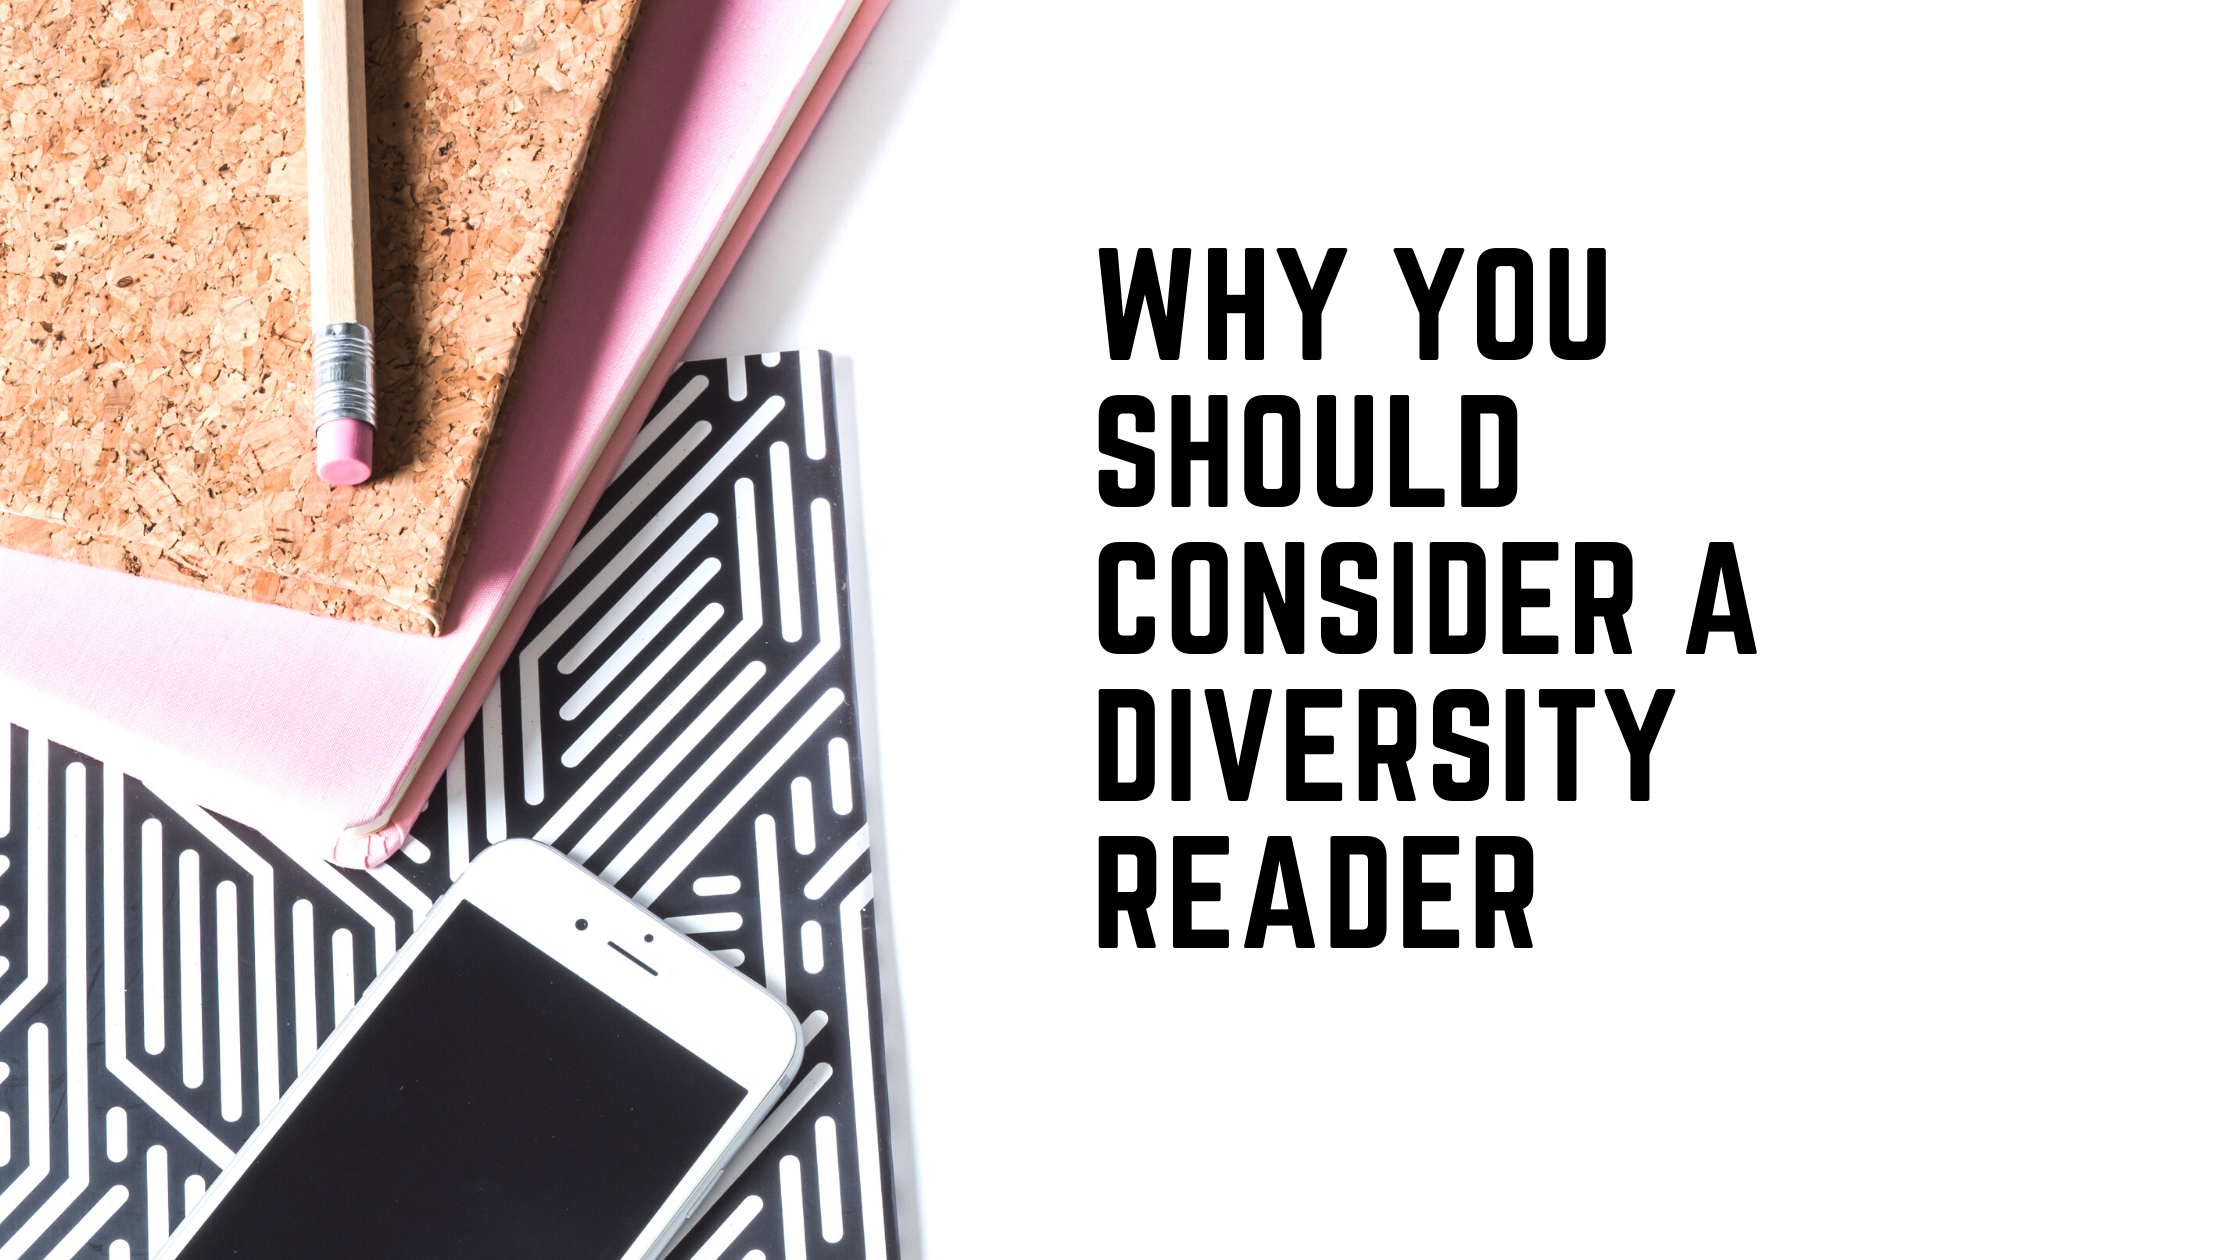 Why You Should Consider A Diversity Reader